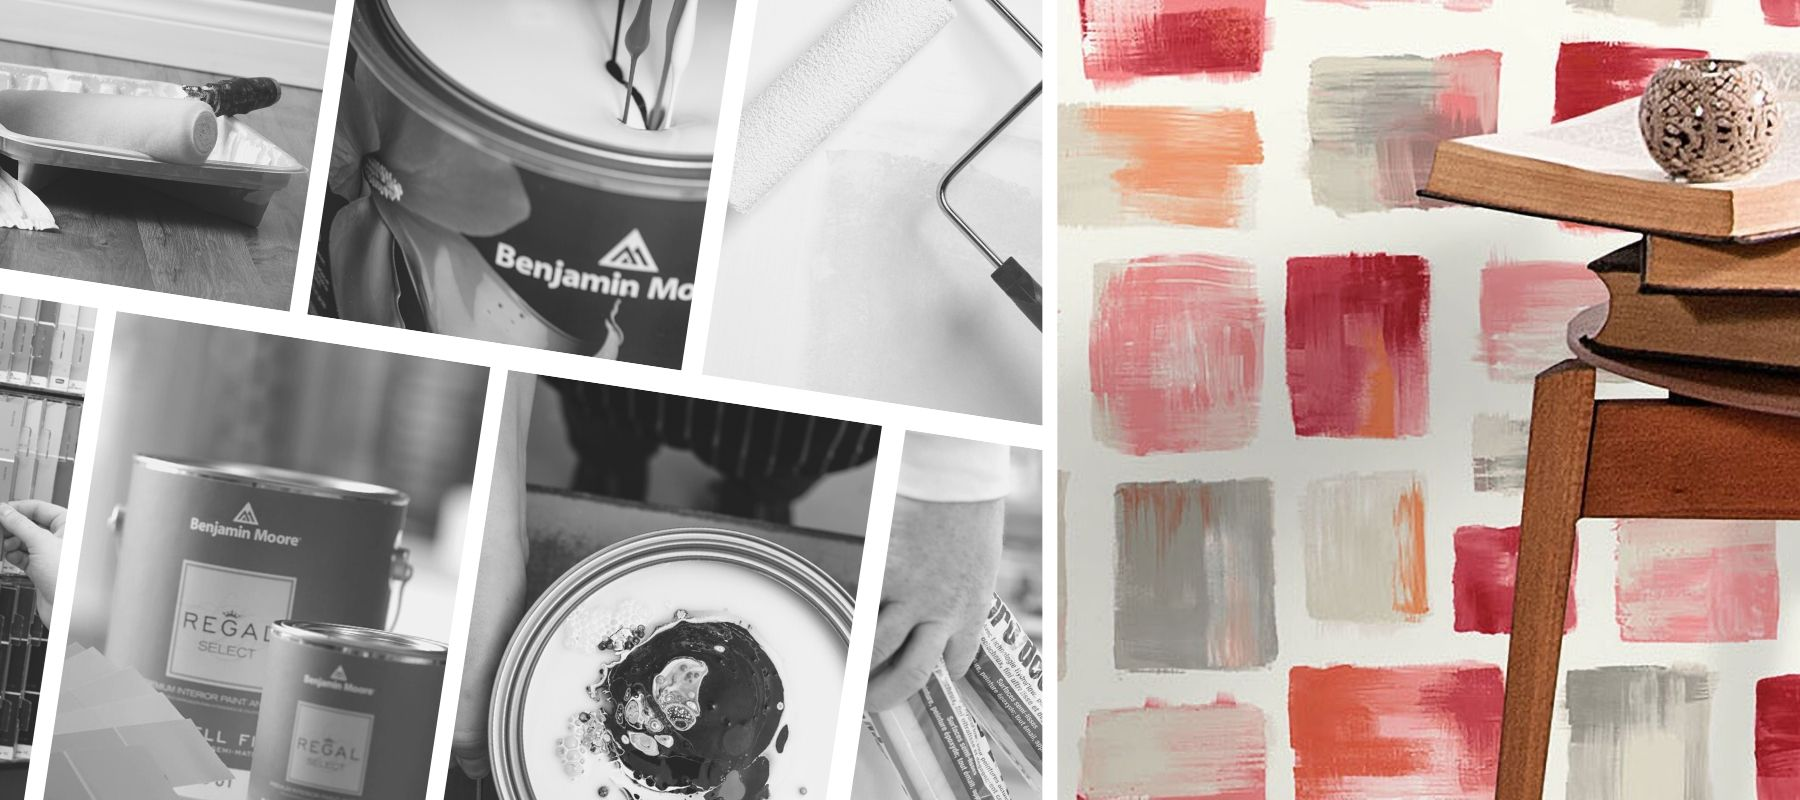 image of wallpaper overlayed ontop of collage of paint store items. wallpaper is red, pink, orange and gray, loooks like paint strokes of each color on the wall.